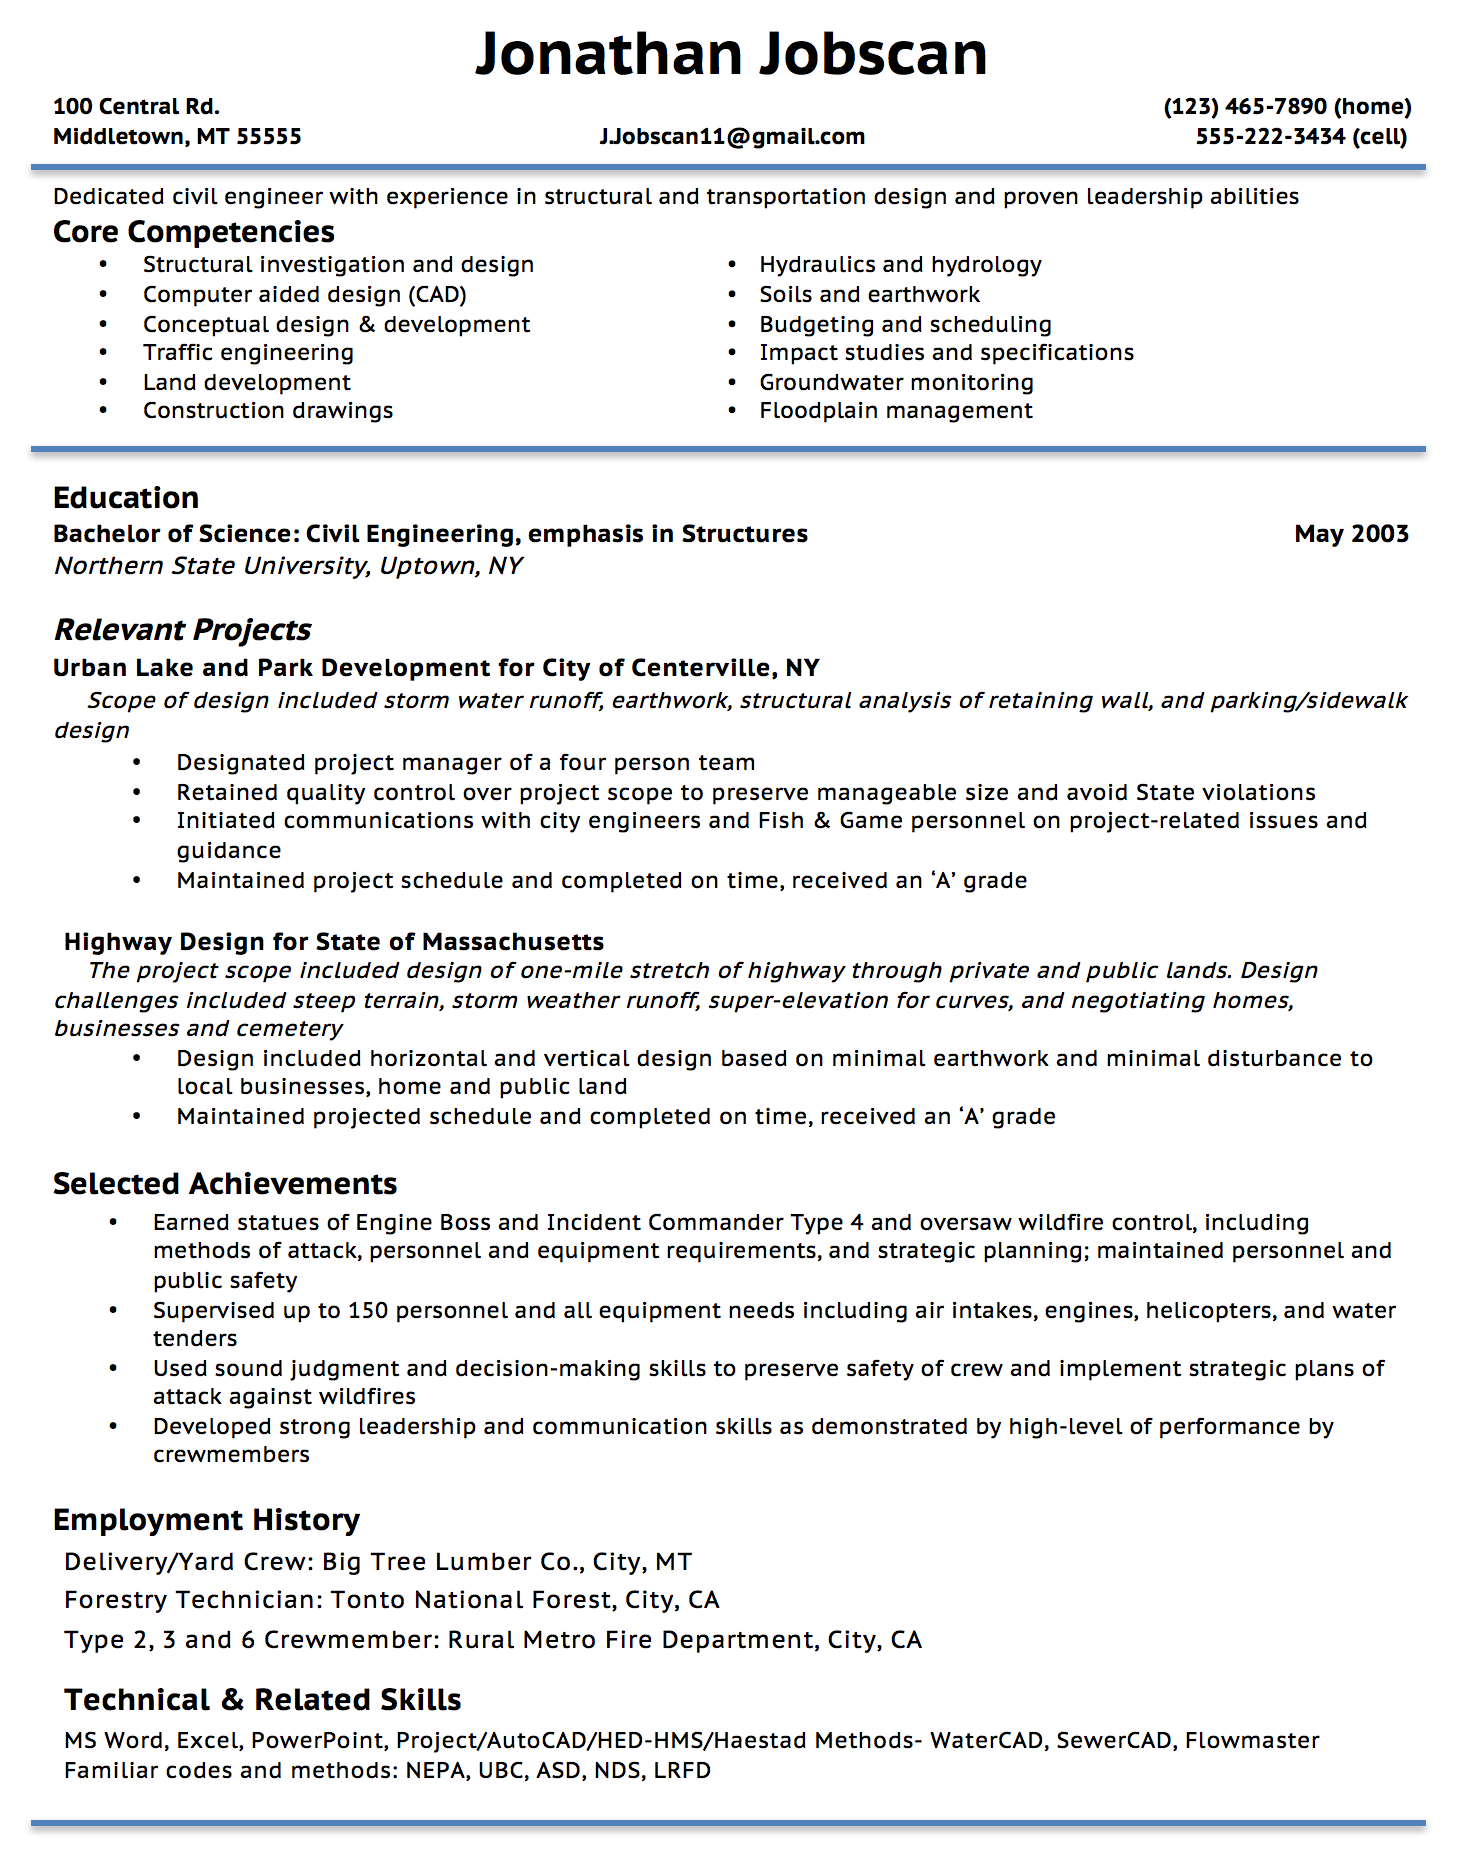 Opposenewapstandardsus  Inspiring Resume Writing Guide  Jobscan With Great Example Of A Functional Resume Format With Nice Template Resume Word Also Pharmacy Student Resume In Addition New Grad Rn Resume Sample And Cna Description For Resume As Well As Carpentry Resume Additionally Nursing Objective For Resume From Jobscanco With Opposenewapstandardsus  Great Resume Writing Guide  Jobscan With Nice Example Of A Functional Resume Format And Inspiring Template Resume Word Also Pharmacy Student Resume In Addition New Grad Rn Resume Sample From Jobscanco